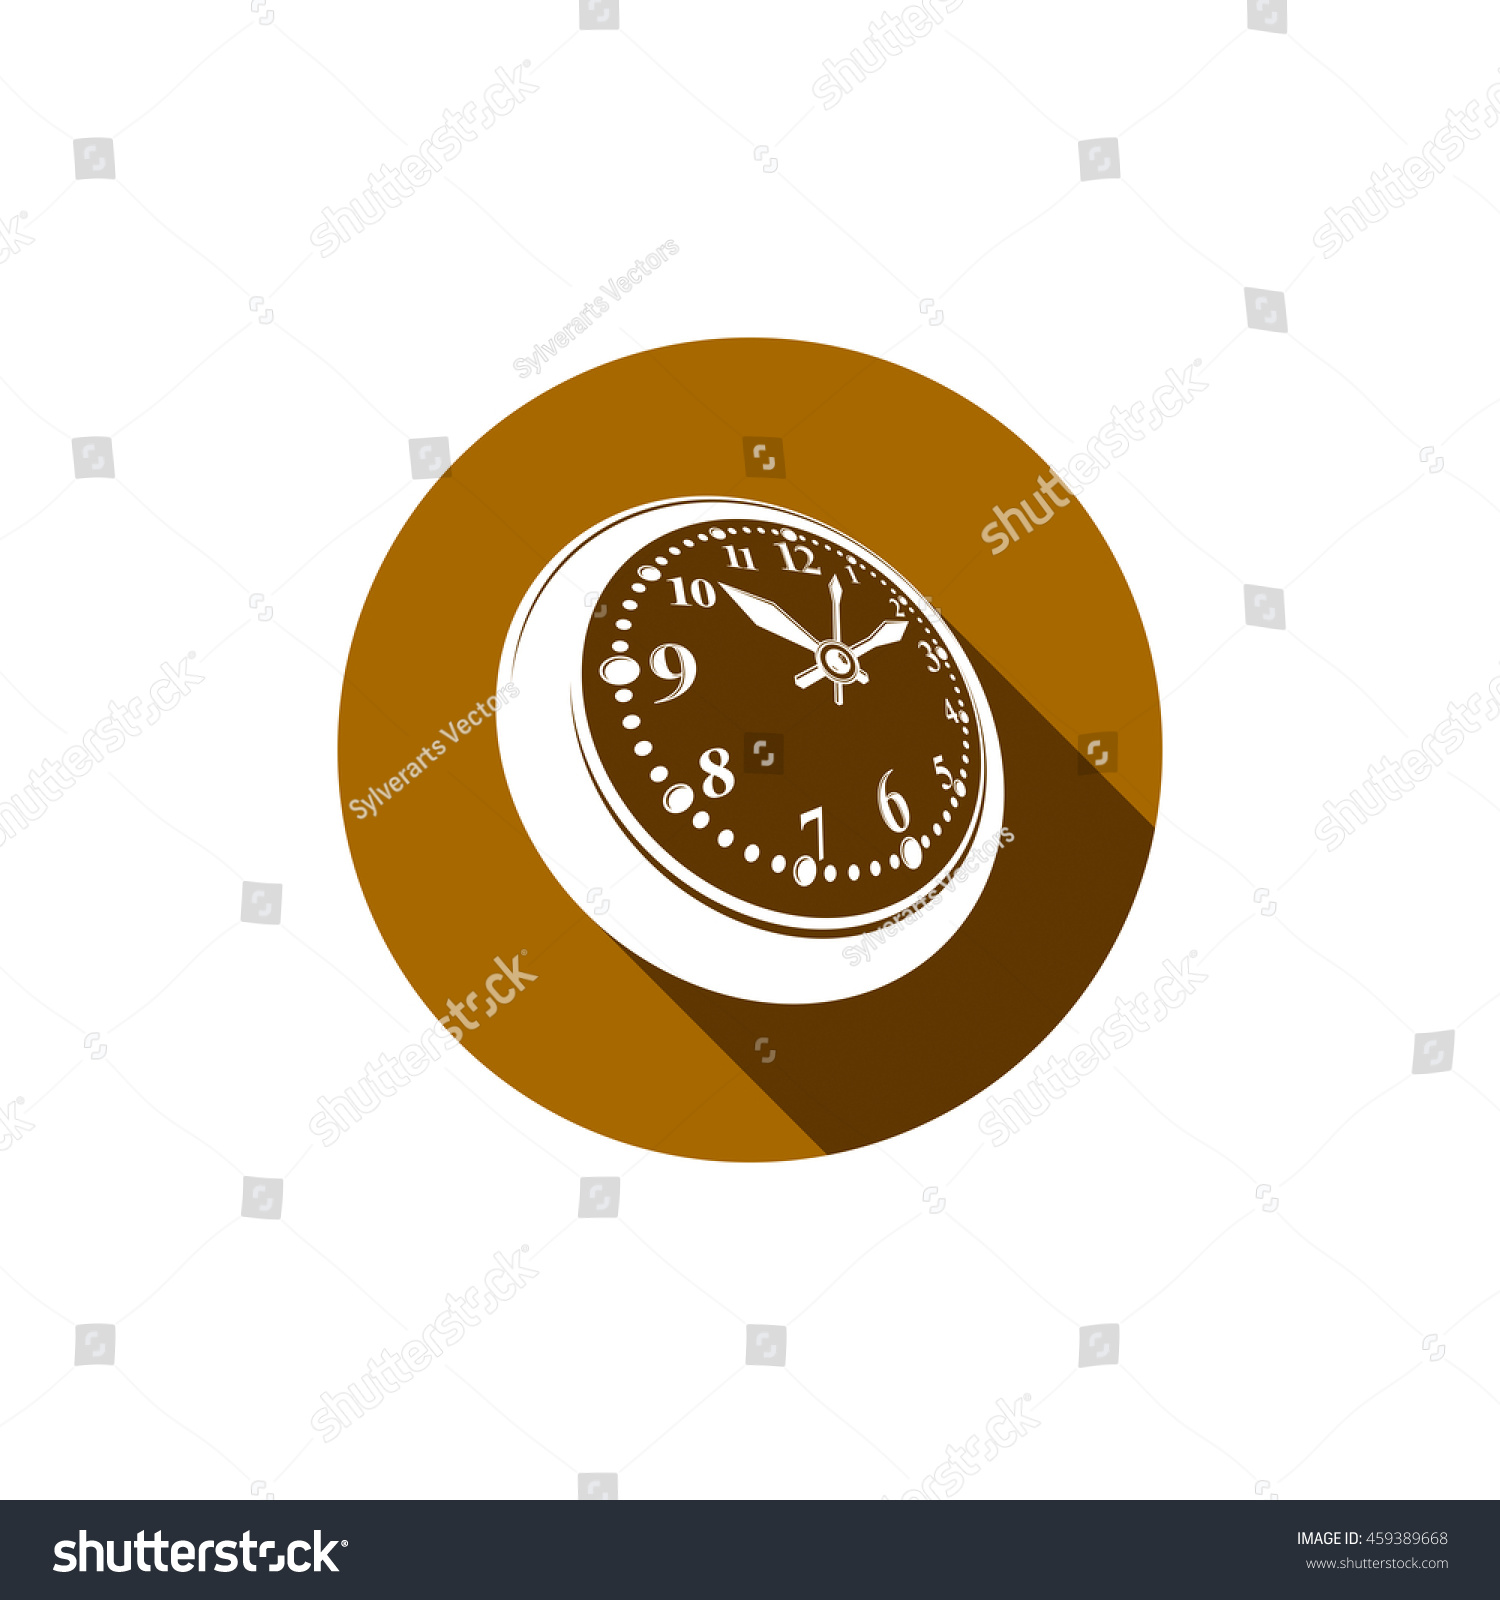 Royalty Free Stock Illustration Of Oldfashioned Pocket Watch Graphic Simple Timer Old Fashioned Classic Stopwatch Time